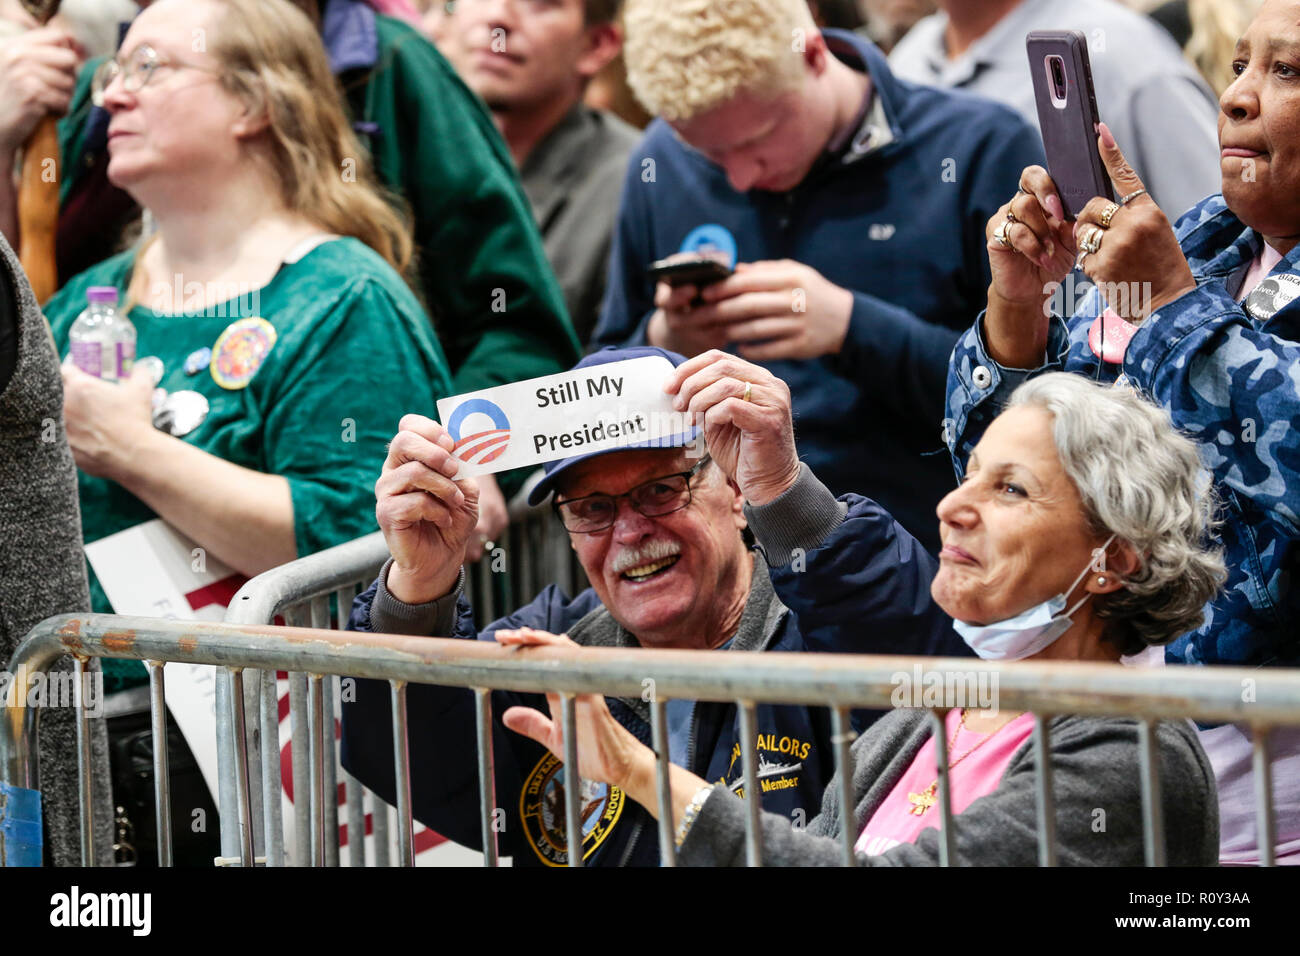 A man holds a 'Still My President' sign in a crowd during a rally that former president Barack Obama speaks at in Milwaukee, Wisconsin. - Stock Image